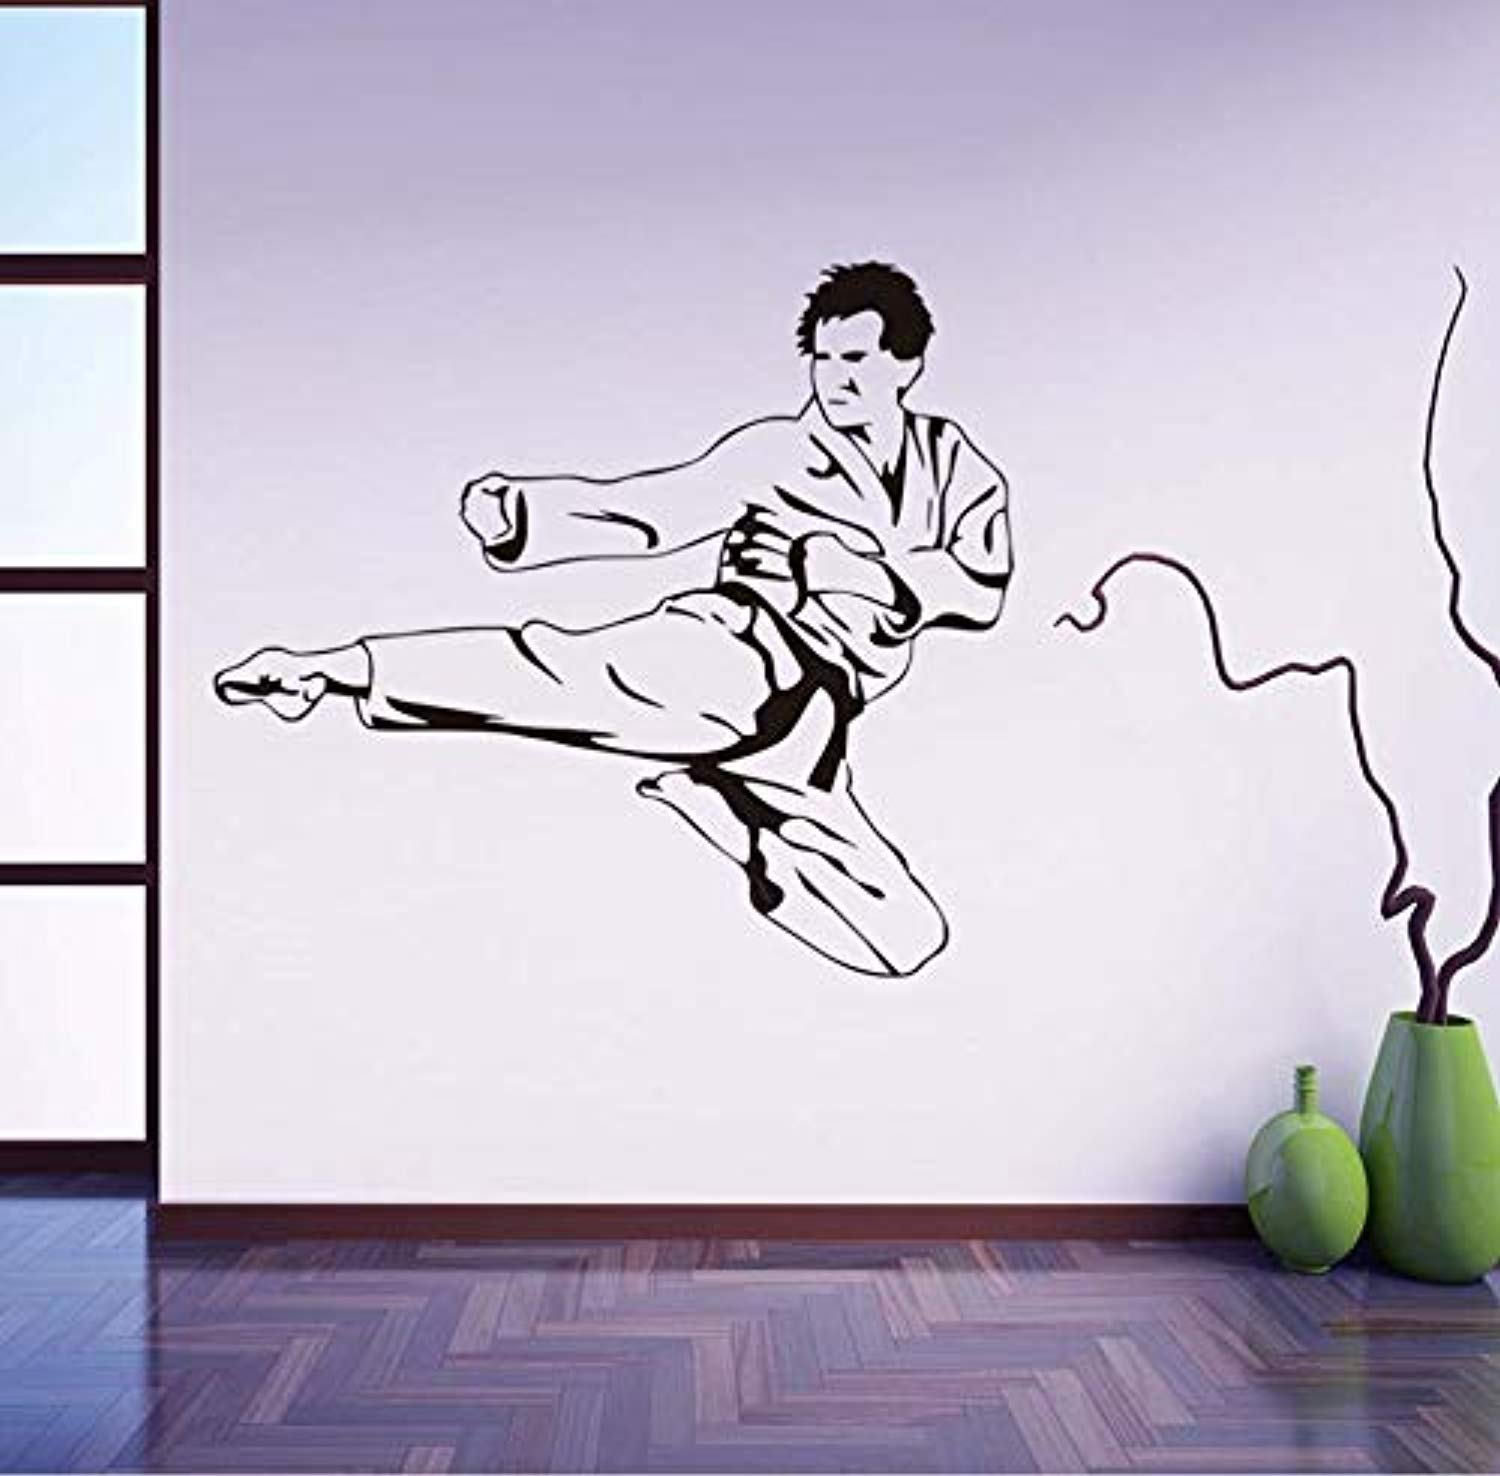 Flying Karate Kick Removable Children Bedroom Decorative Sport Home for Man Room Wall Decals Decor Vinyl Sticker Q16407 by Profit Decal